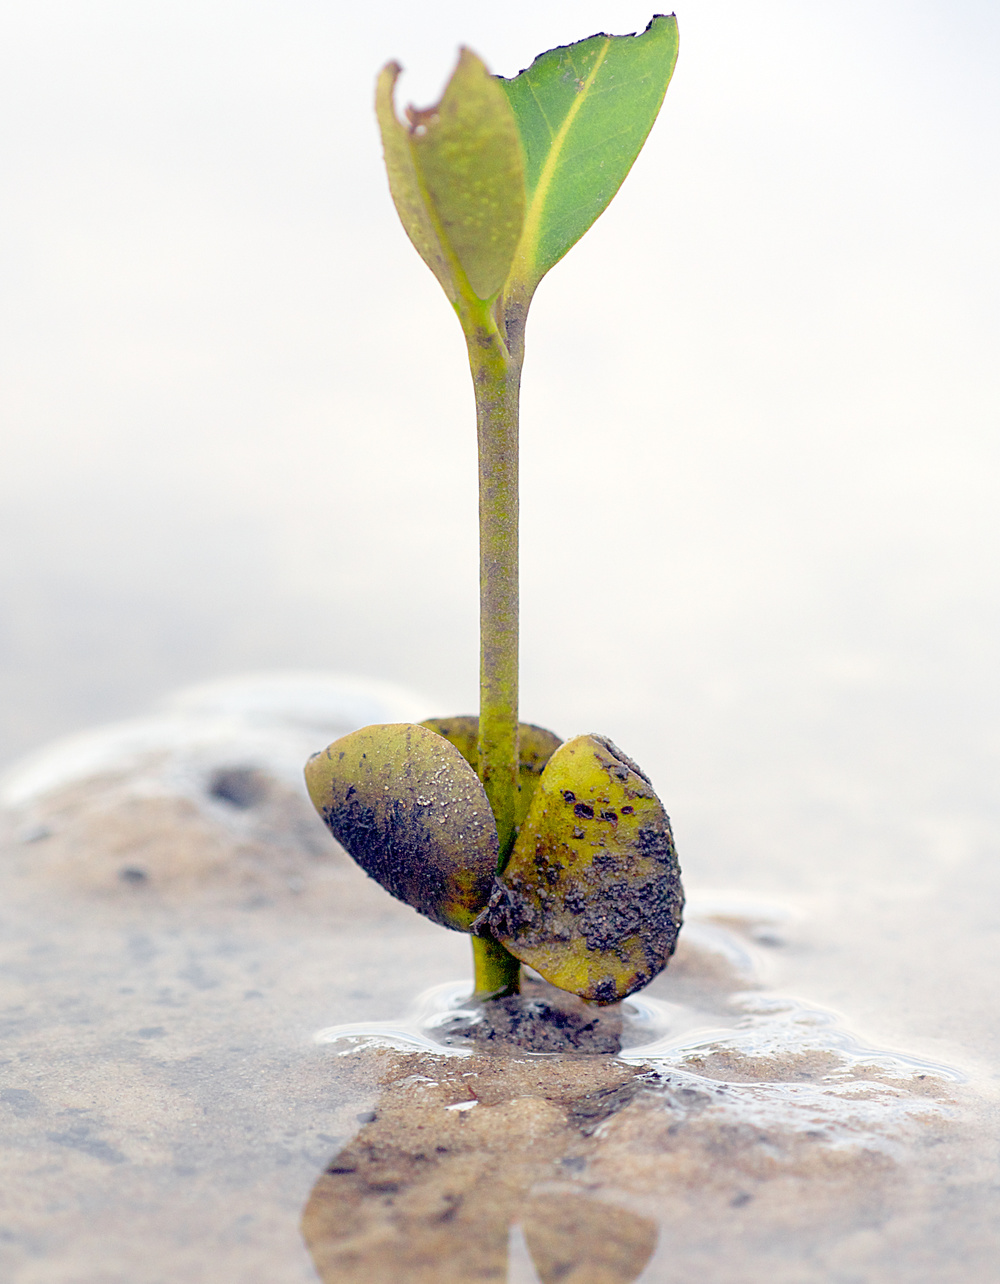 A mangrove seedling takes root. Mangroves play a critical role in their job as liaison between land and sea by protecting shorelines from storms and offering shelter to juvenile fishes.